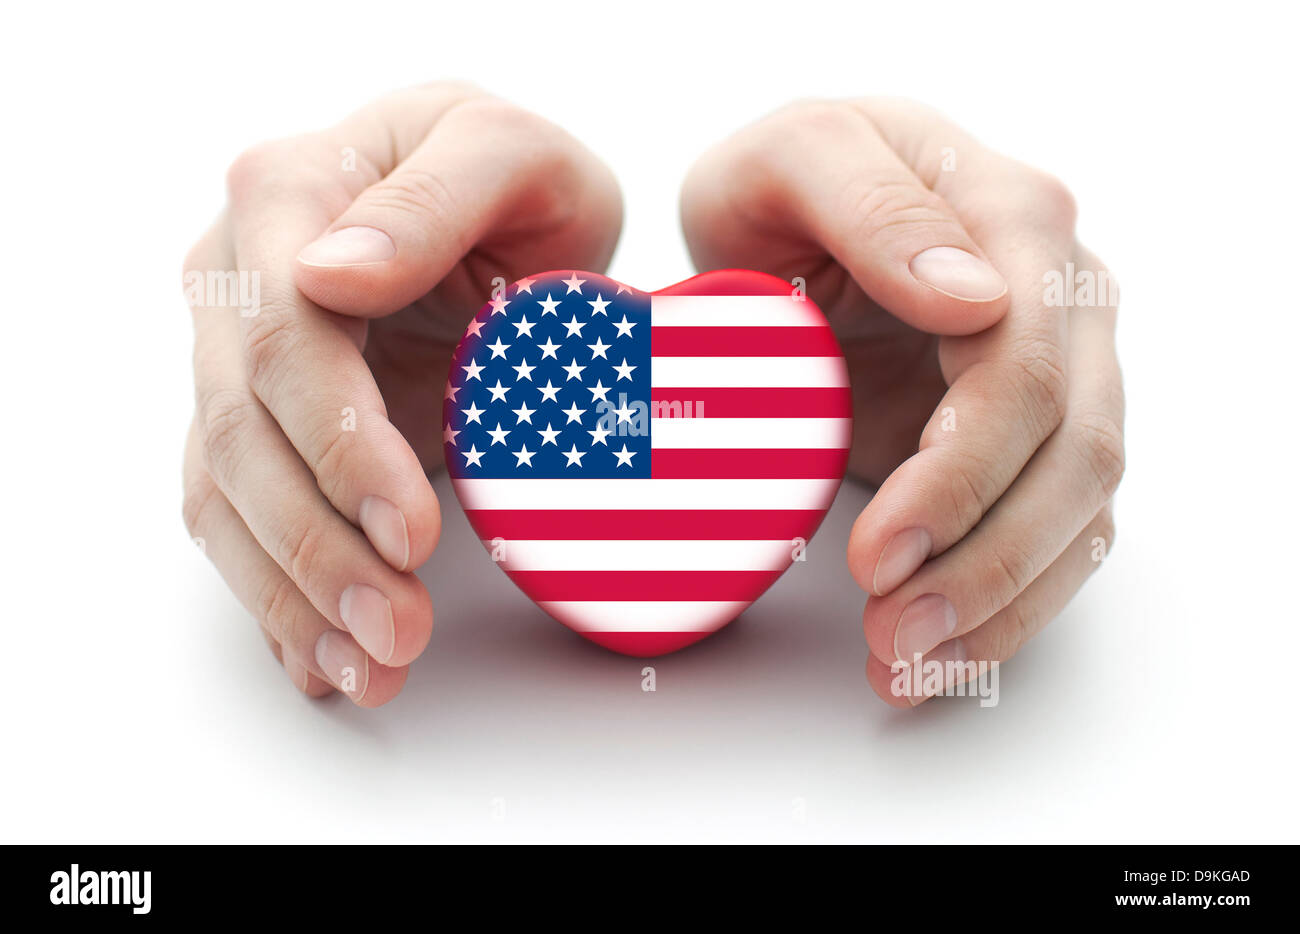 Hands covering U.S. heart on white background - Stock Image